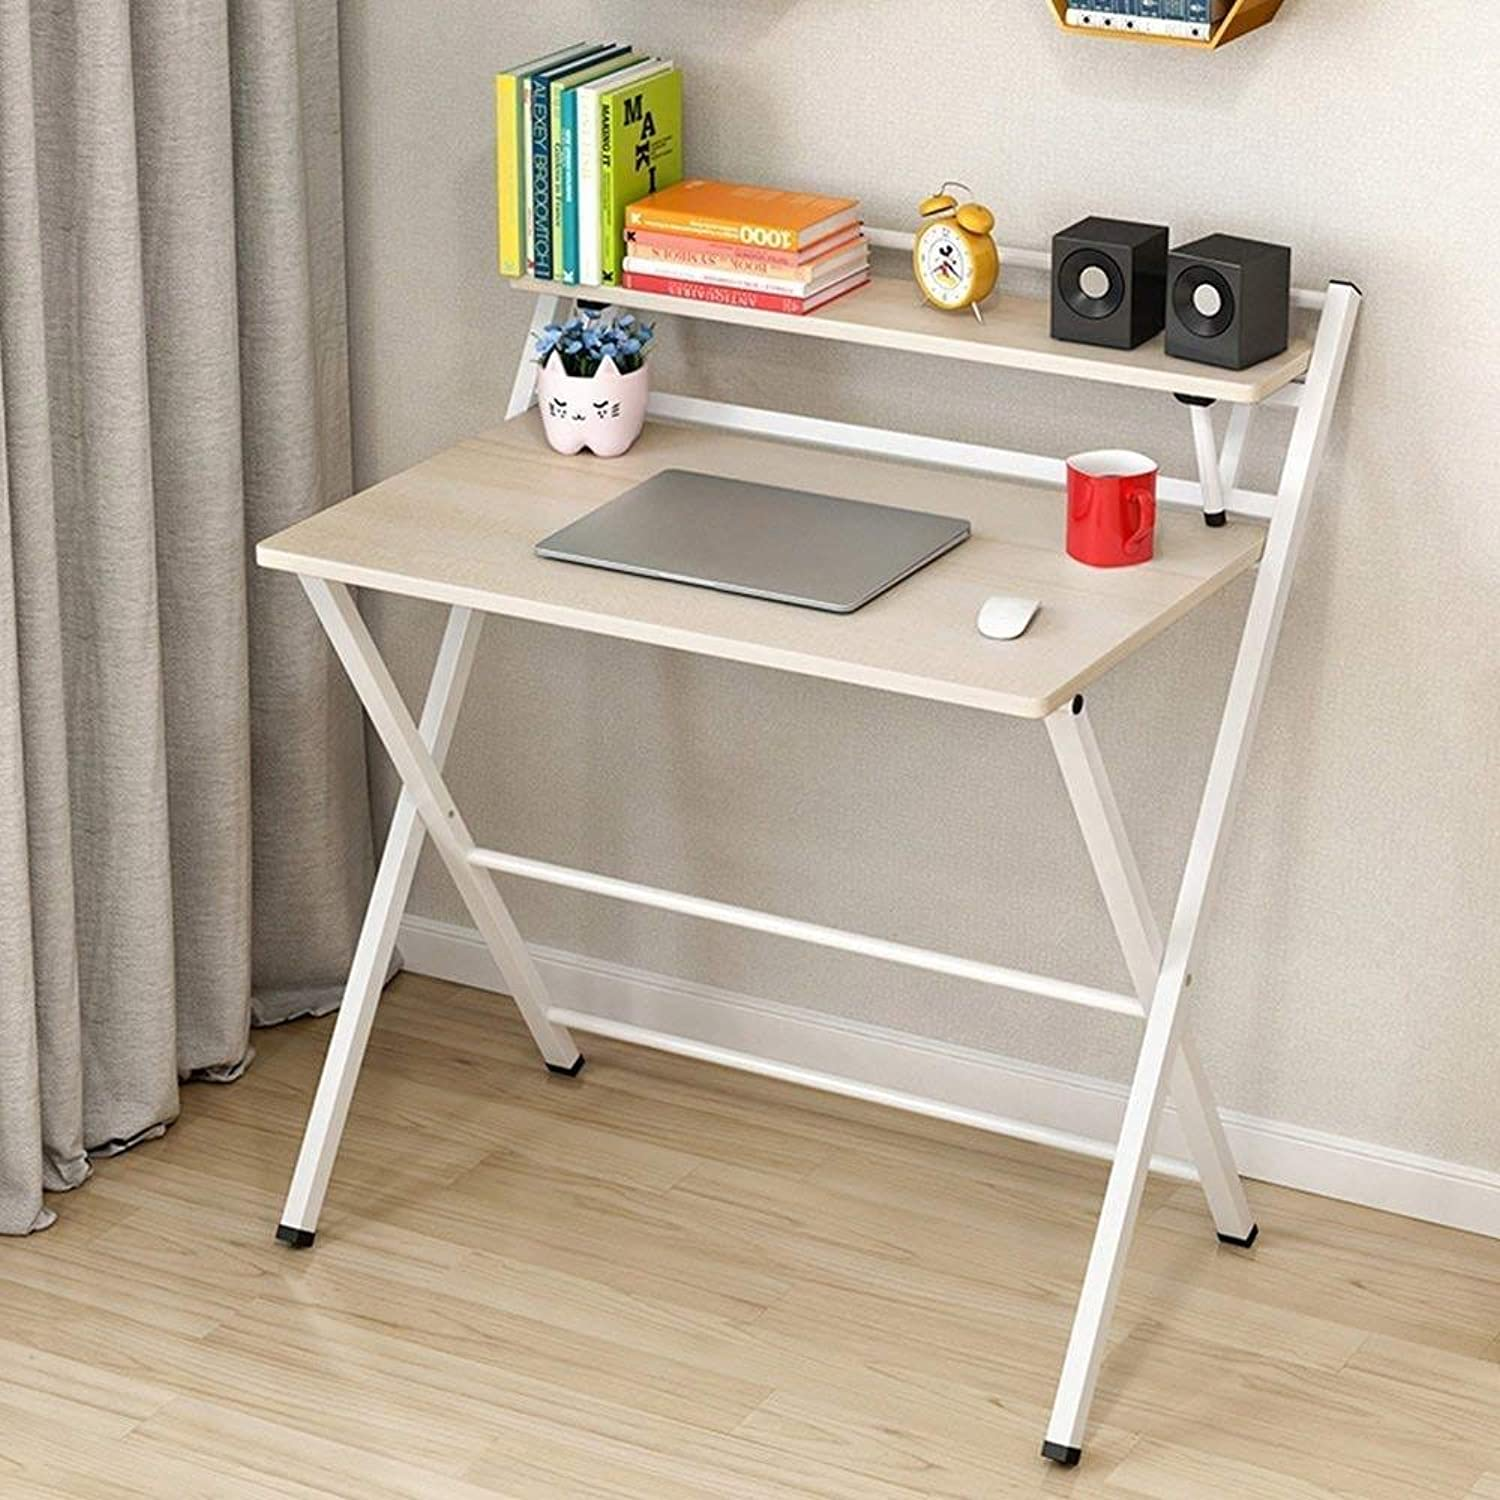 distribución global ADWN Deed Deed Deed Table - Simple Home Fashion Plegable Portátil Escritorio Portátil Estudiante Student Dormitorio Dormitorio Simple Lazy Bed Simple Home,A,Mesa  vendiendo bien en todo el mundo